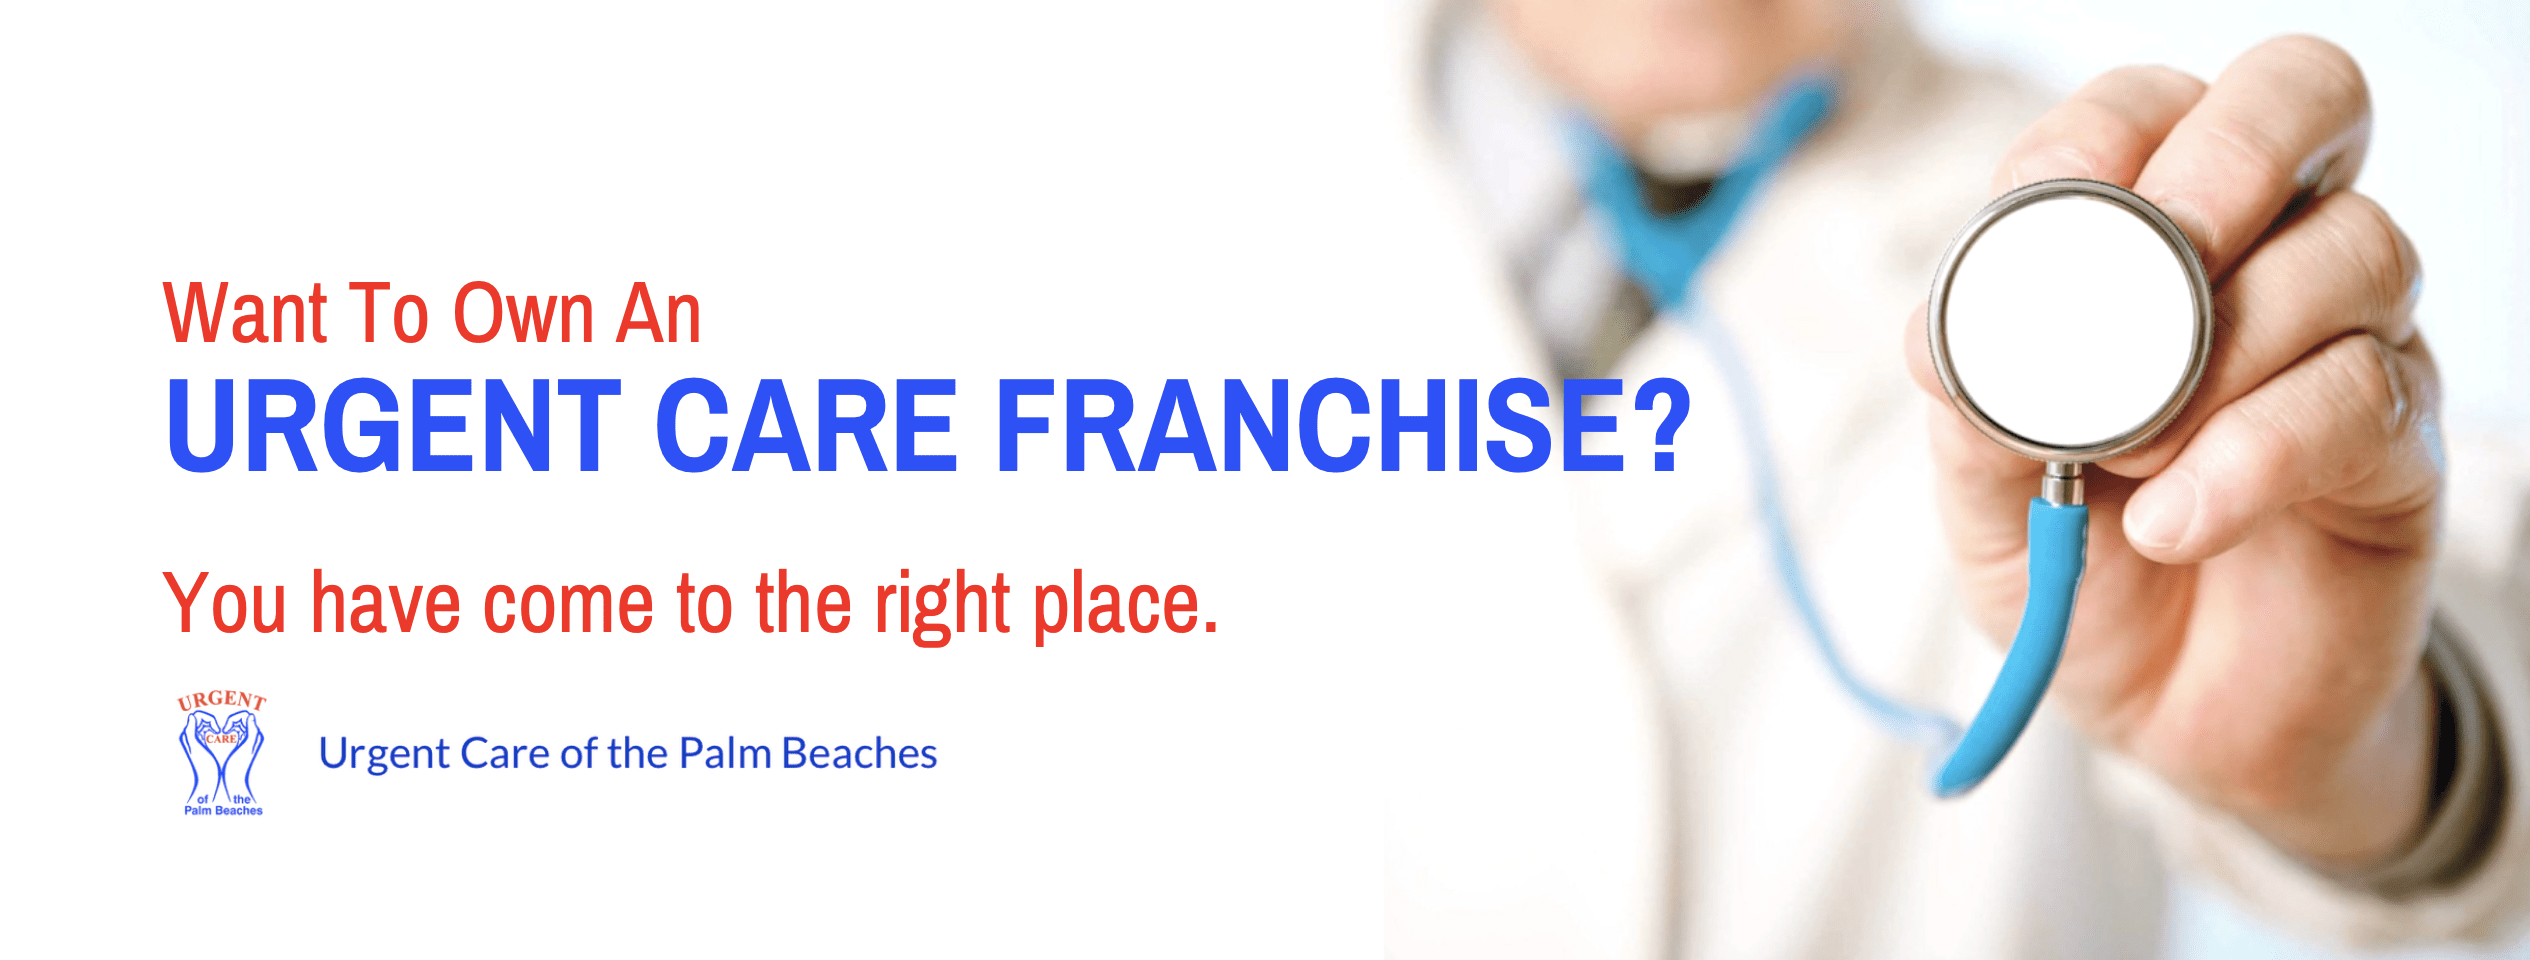 best-urgent-care-franchise Urgent Care Franchise Florida